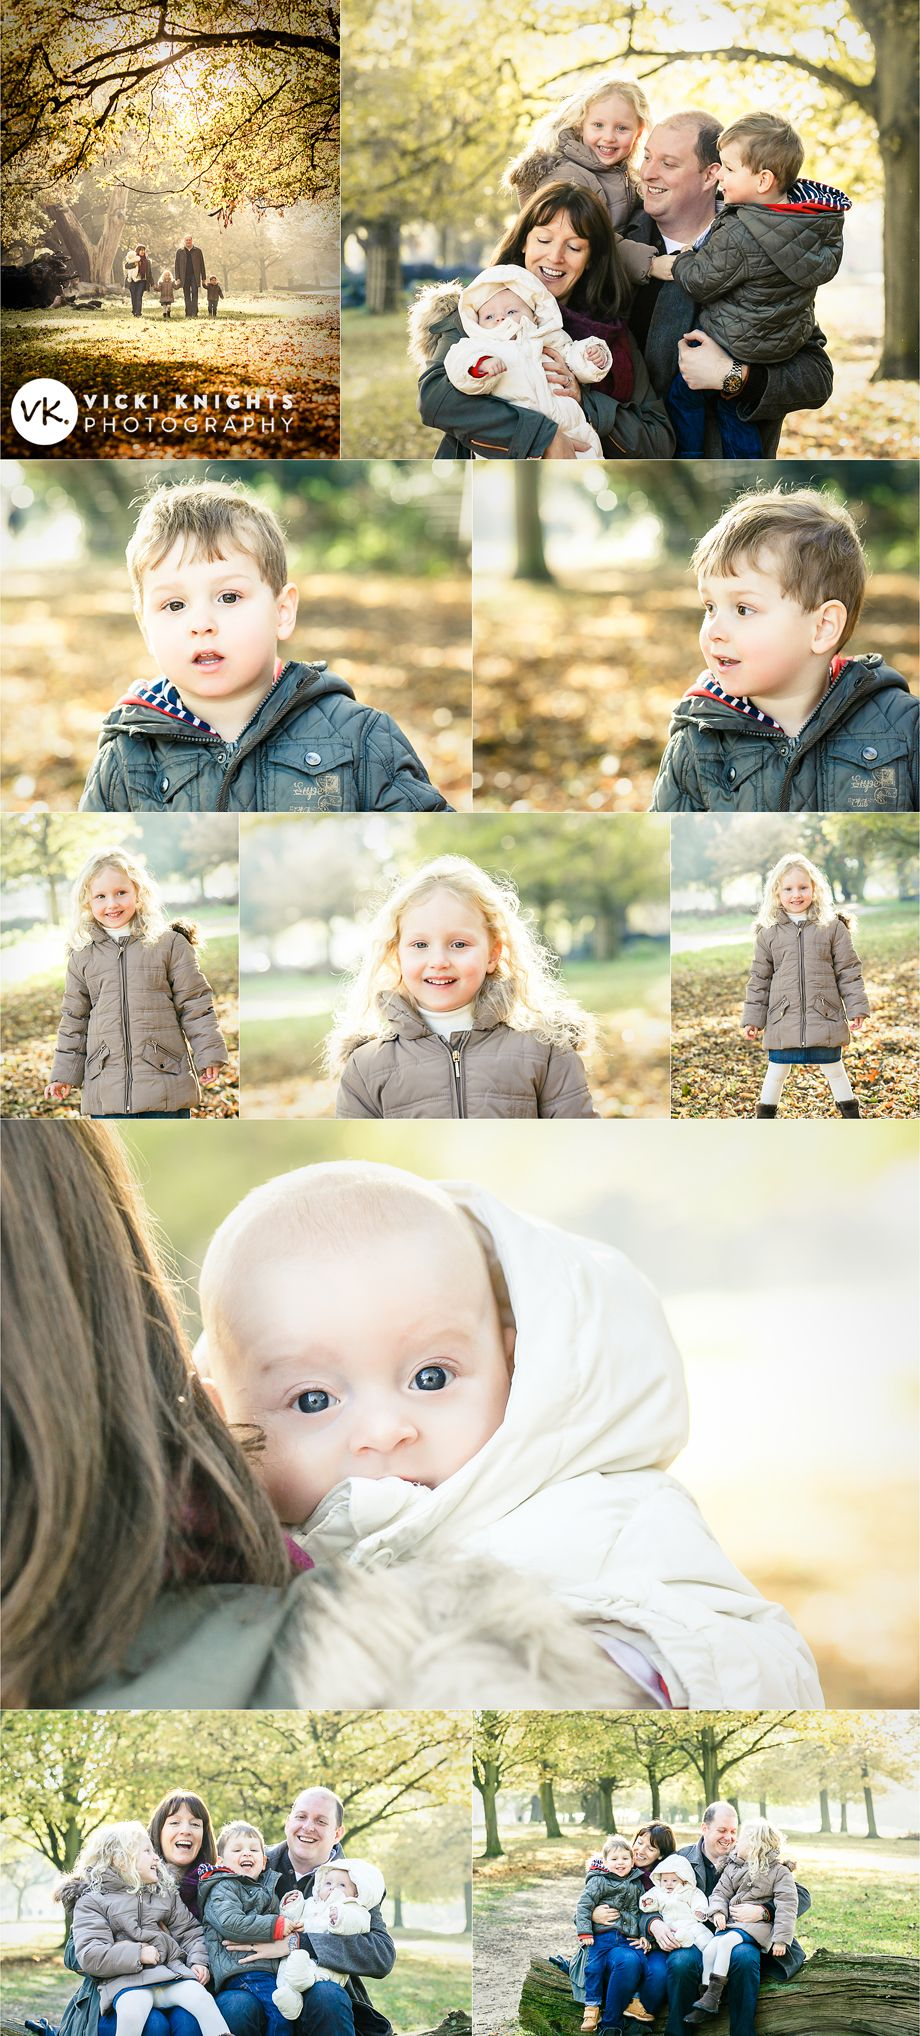 An autumnal family photo shoot - Vicki Knights Photography